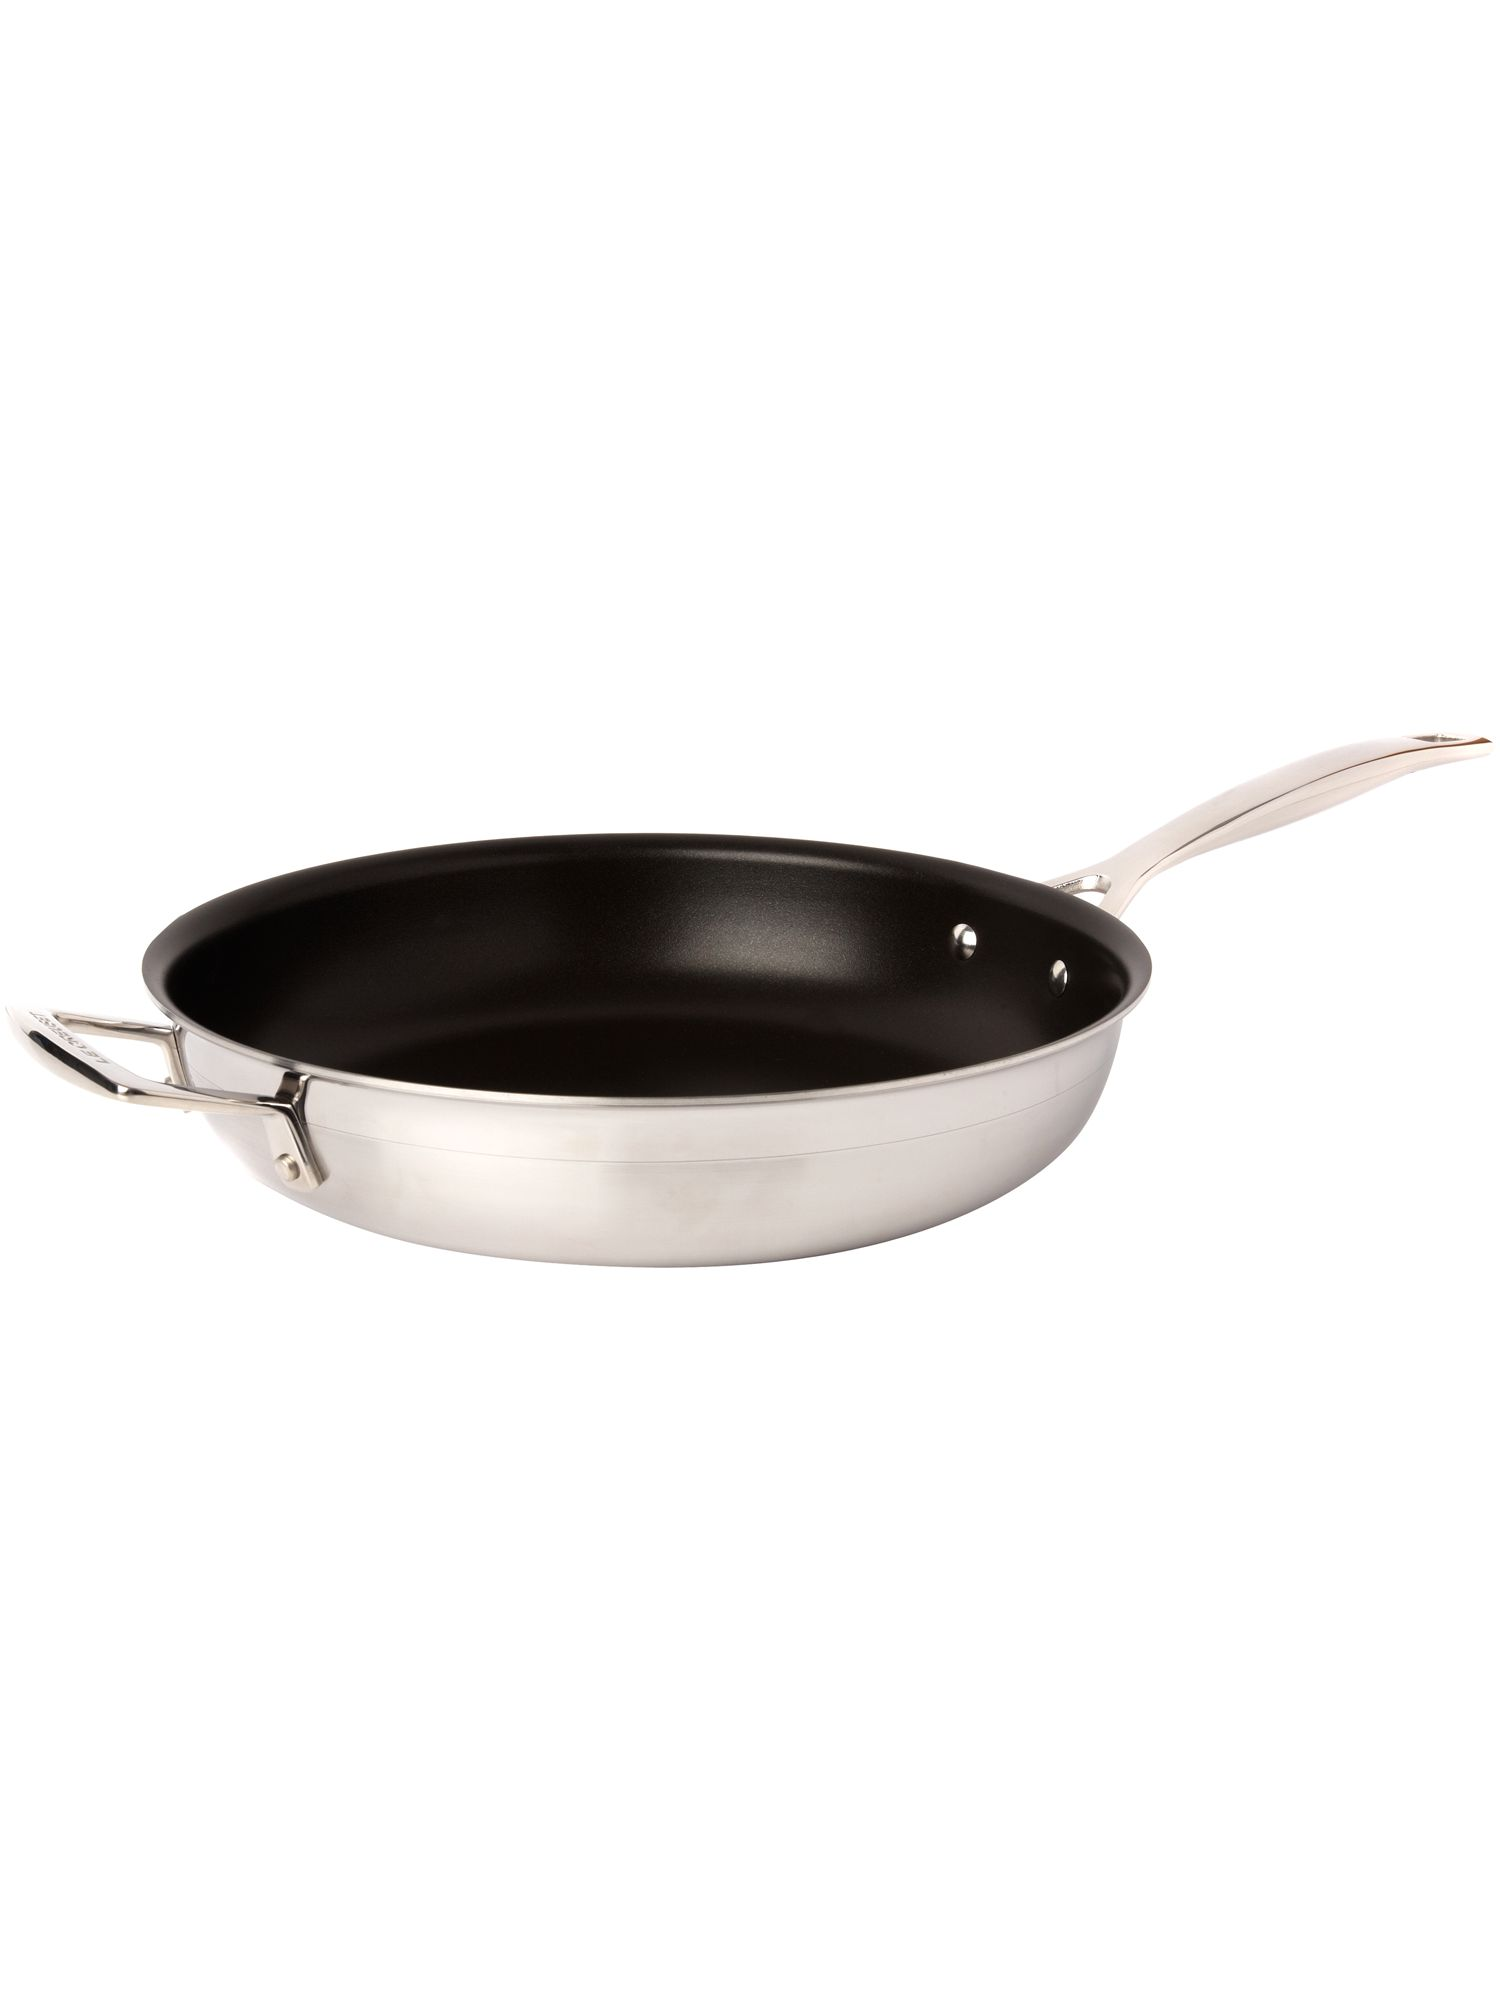 Le Creuset 3-Ply Stainless Steel 28cm Frying Pan